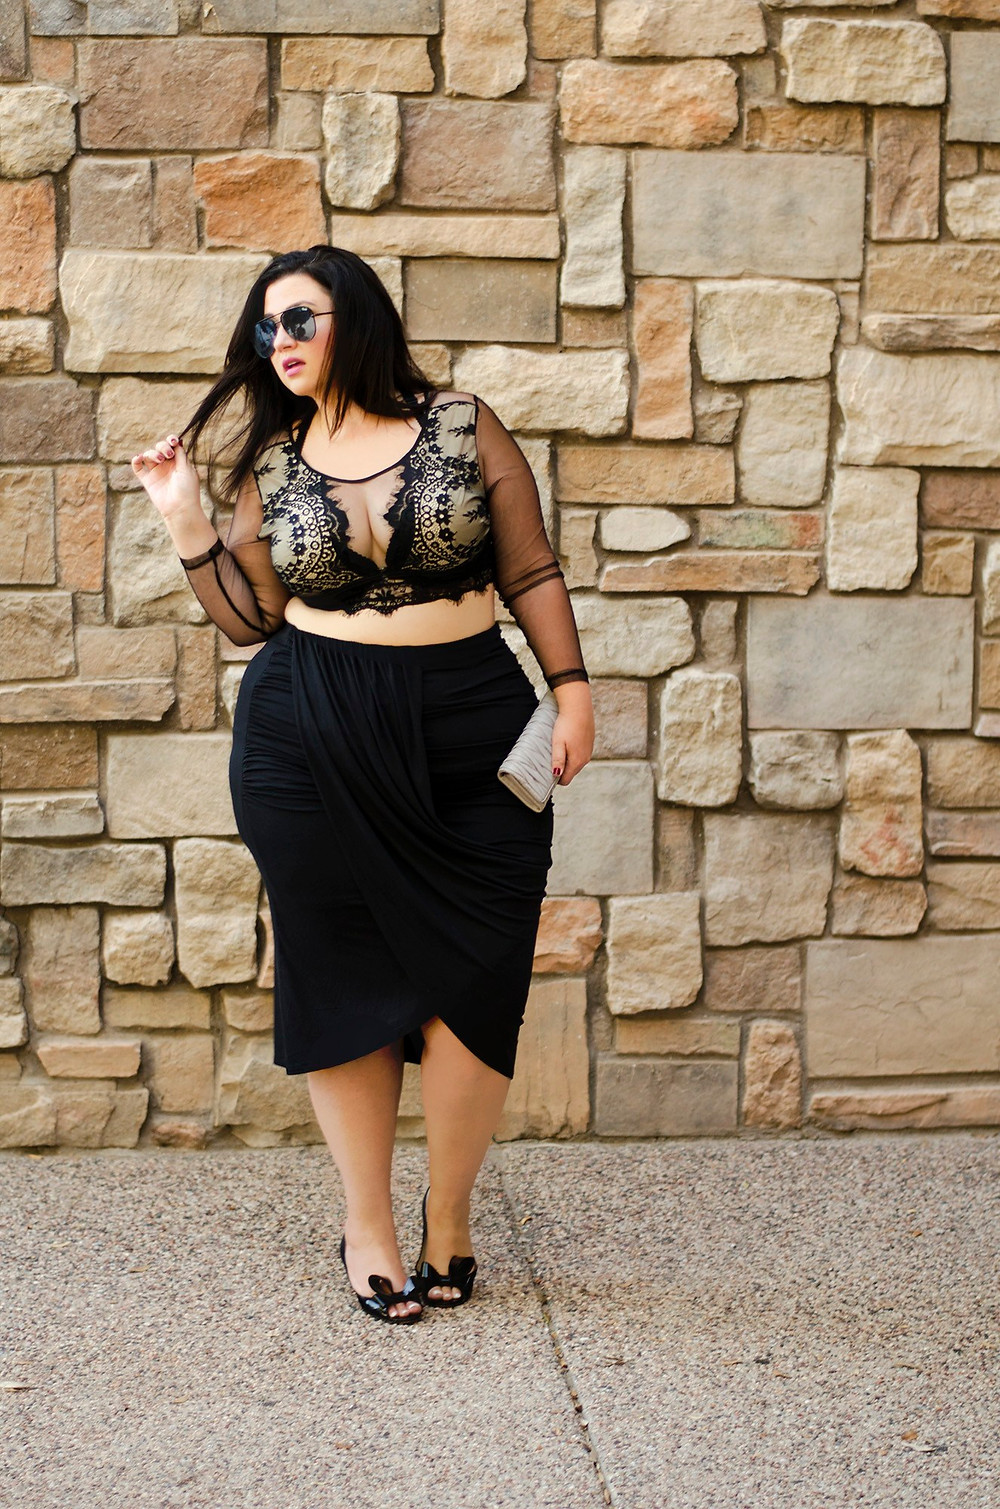 crystal coons sometimes glam mesh croptop ootd fashion blogger phoenix az plus size fashioncrystal coons sometimes glam mesh croptop ootd fashion blogger phoenix az plus size fashion